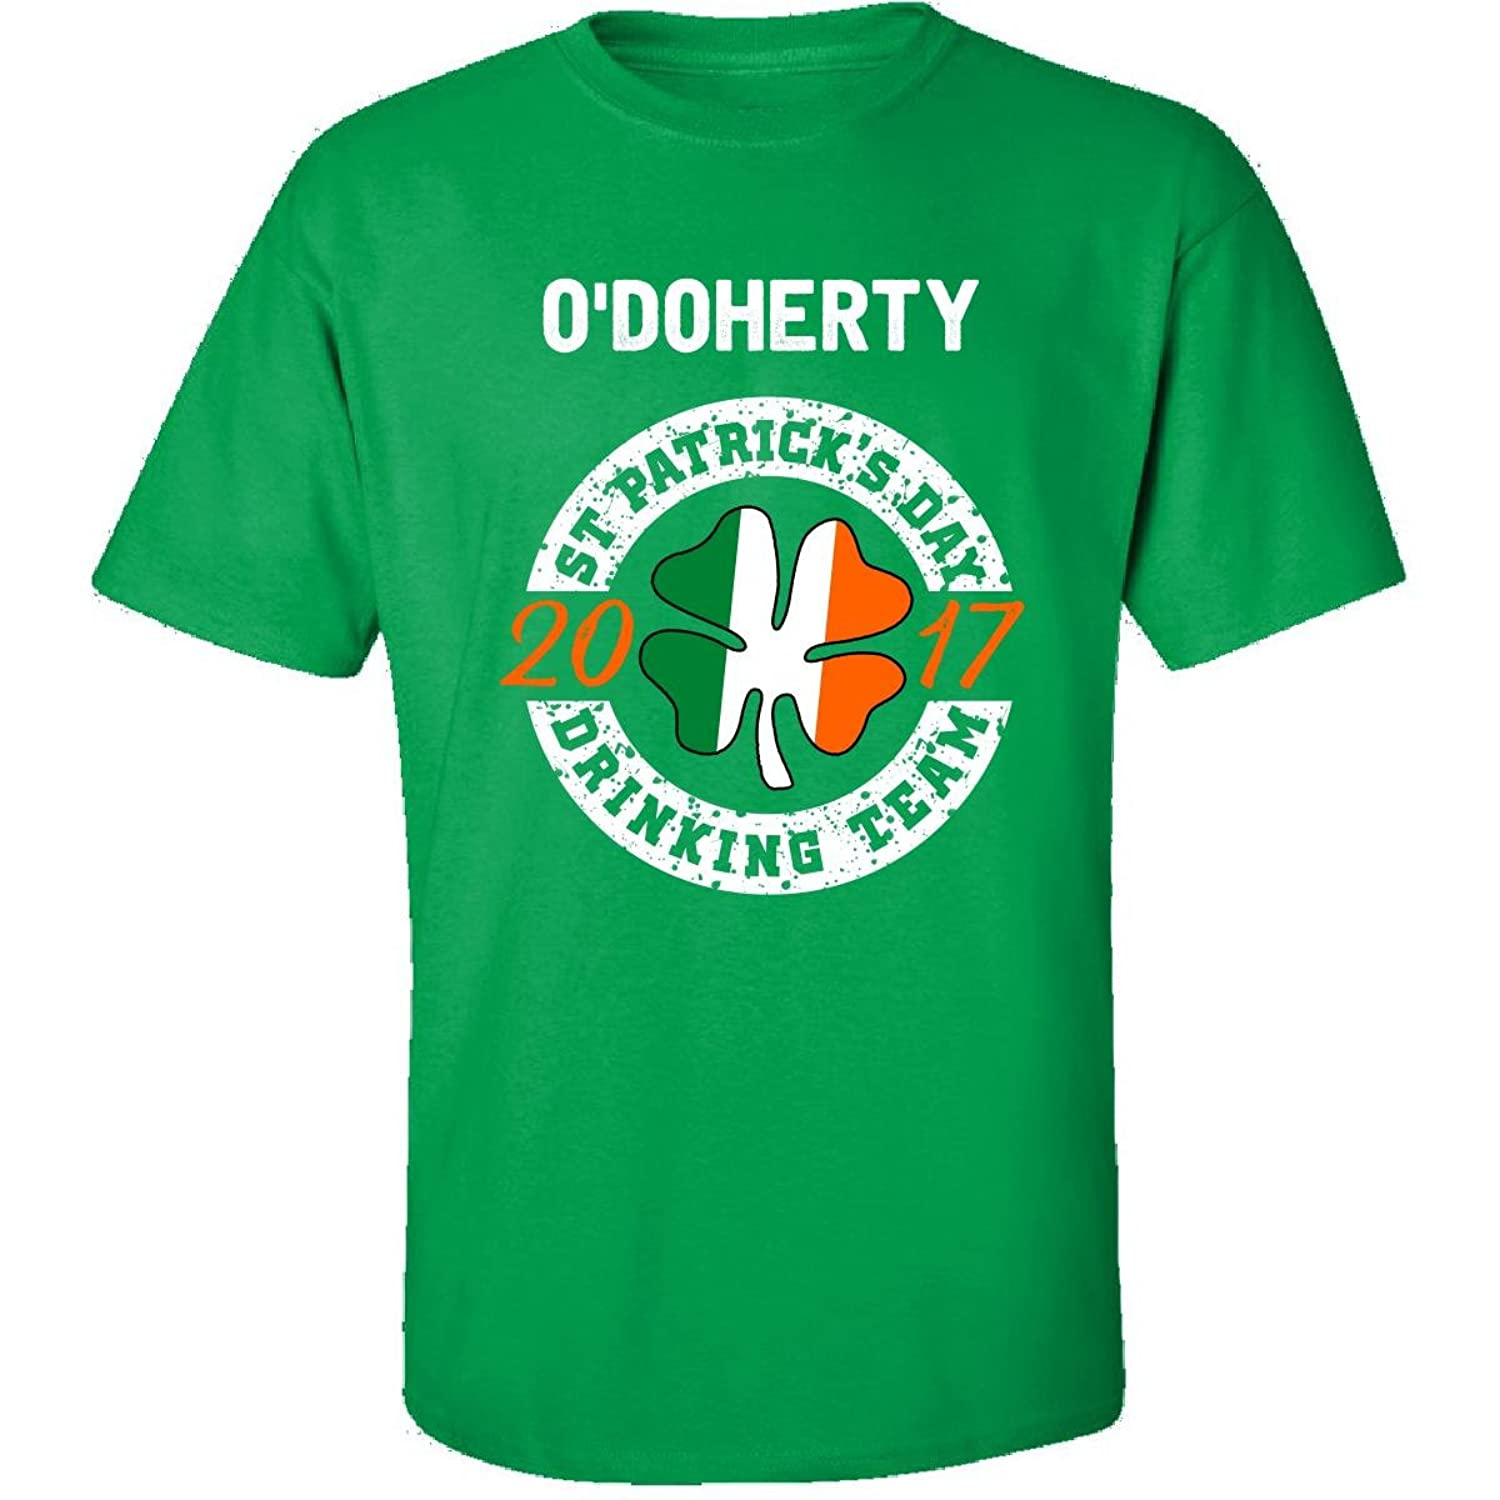 Odoherty St Patricks Day 2017 Drinking Team Irish - Adult Shirt